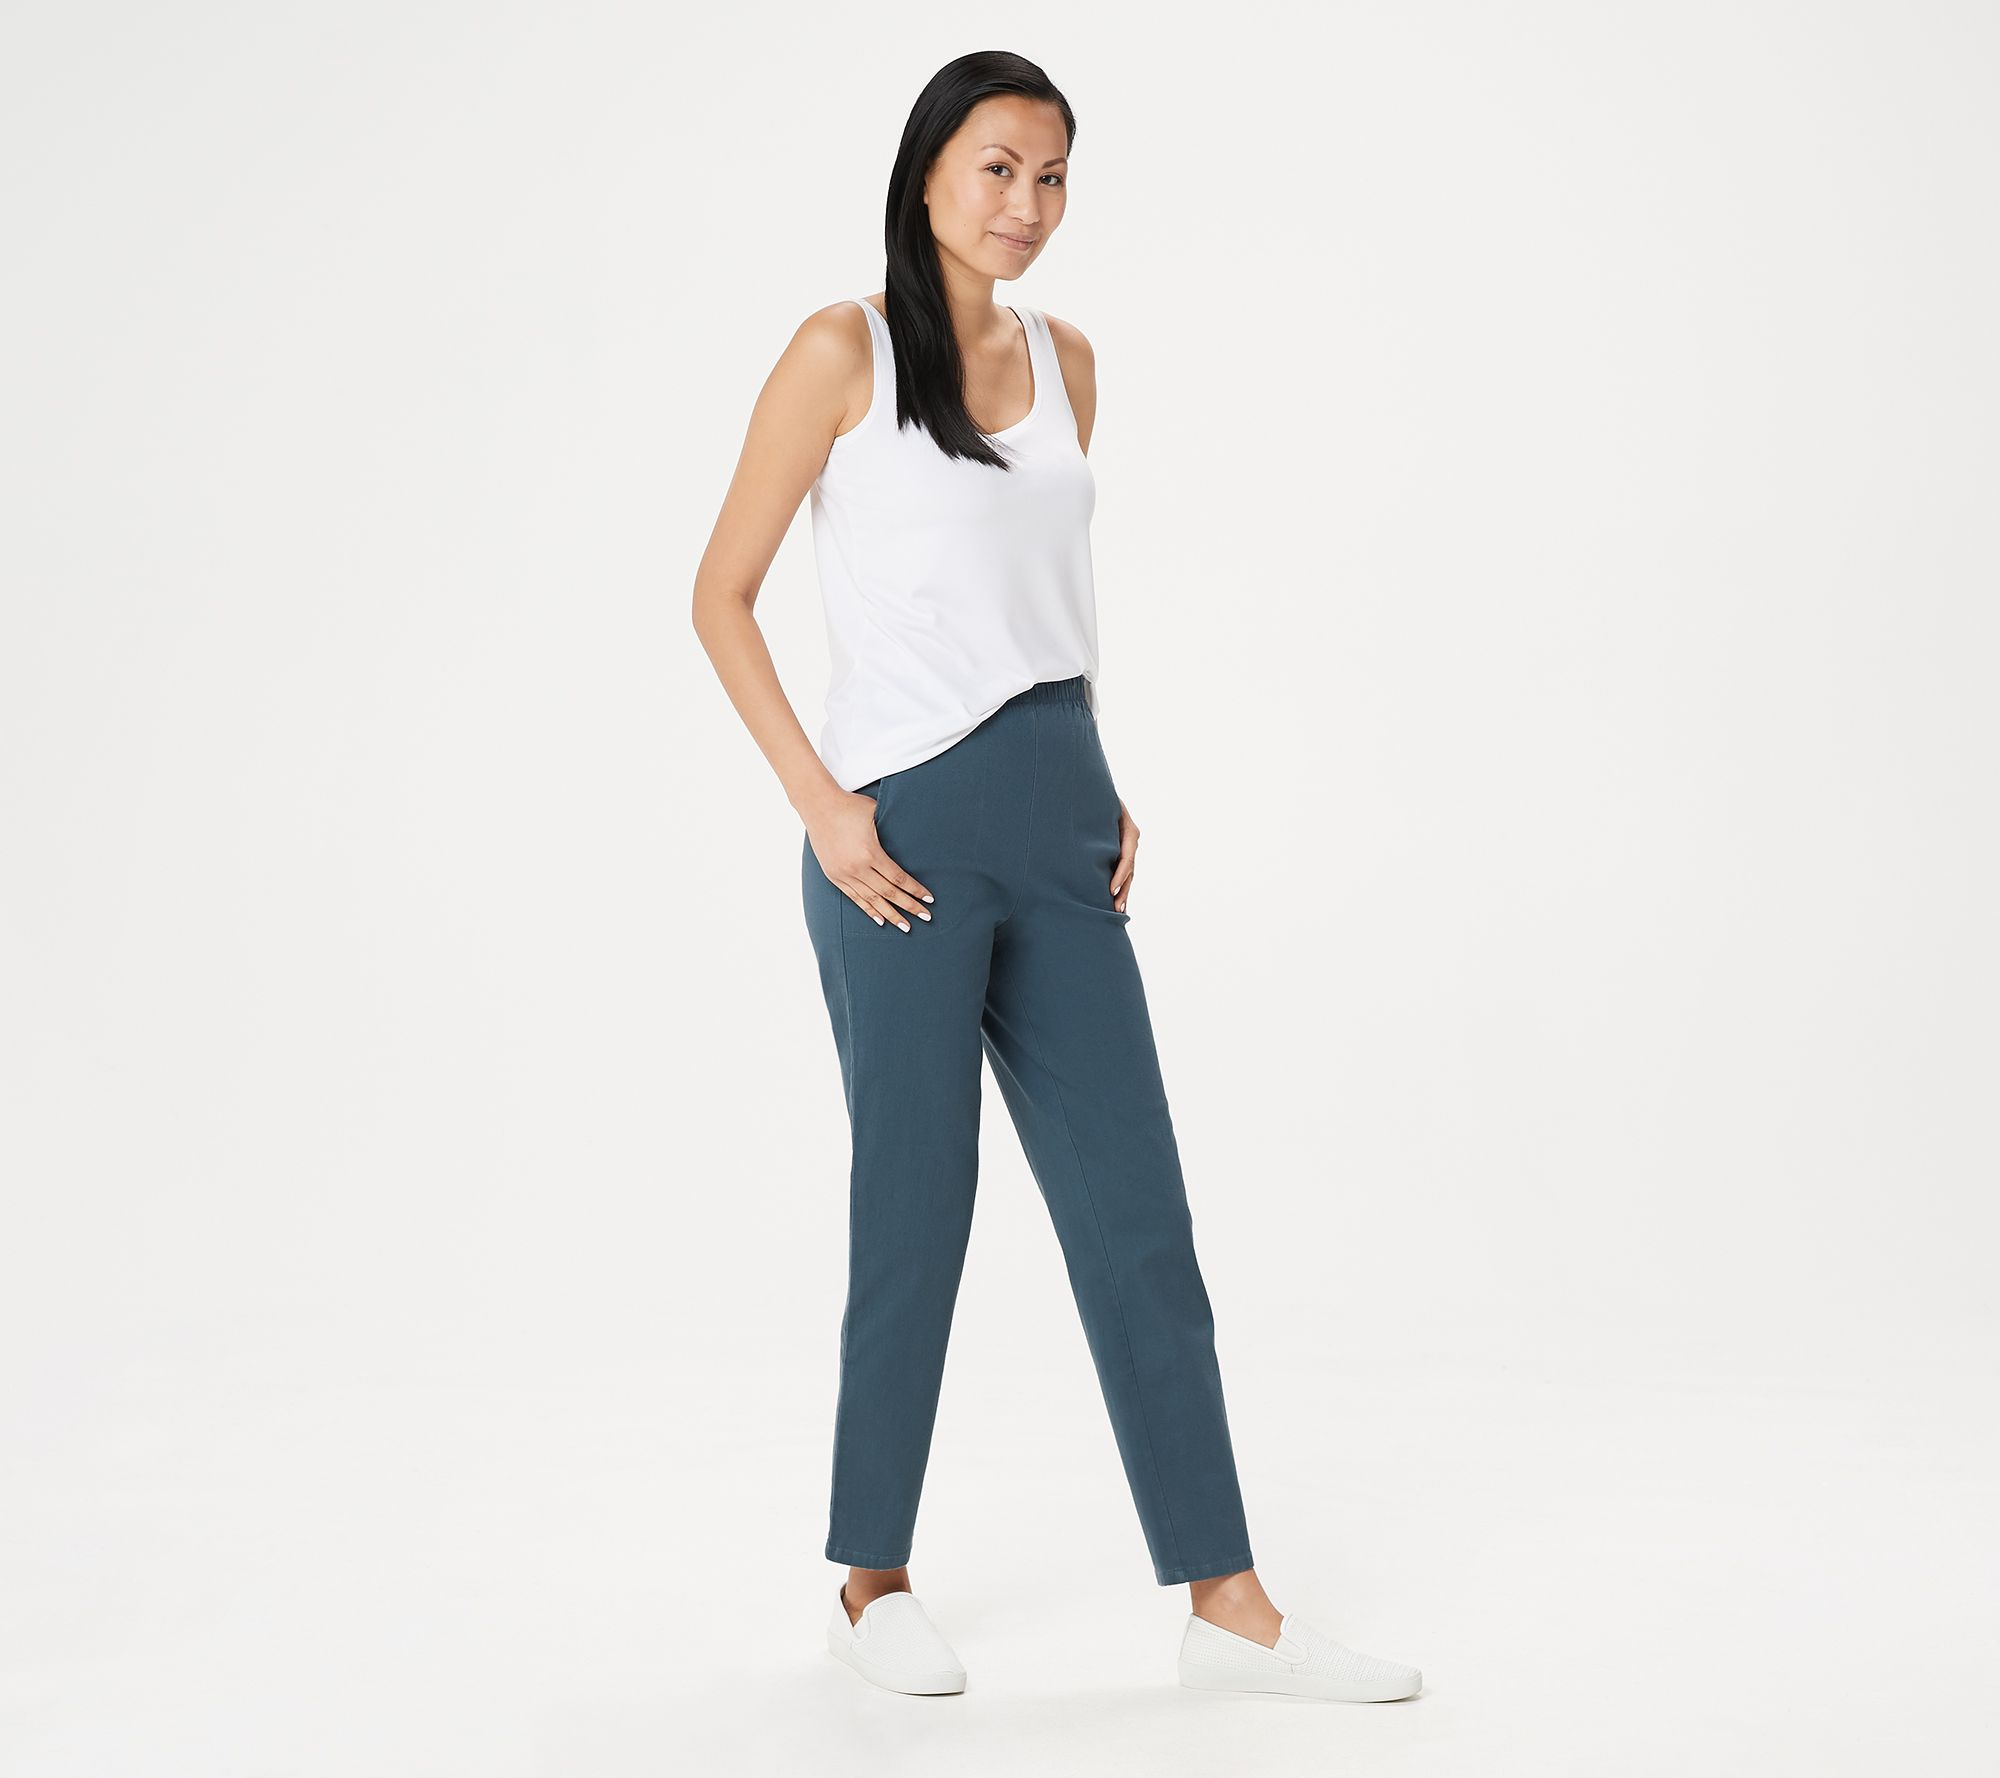 591f54dfd5fb Original Waist Stretch Petite Pants with Side Pockets - Page 1 — QVC.com